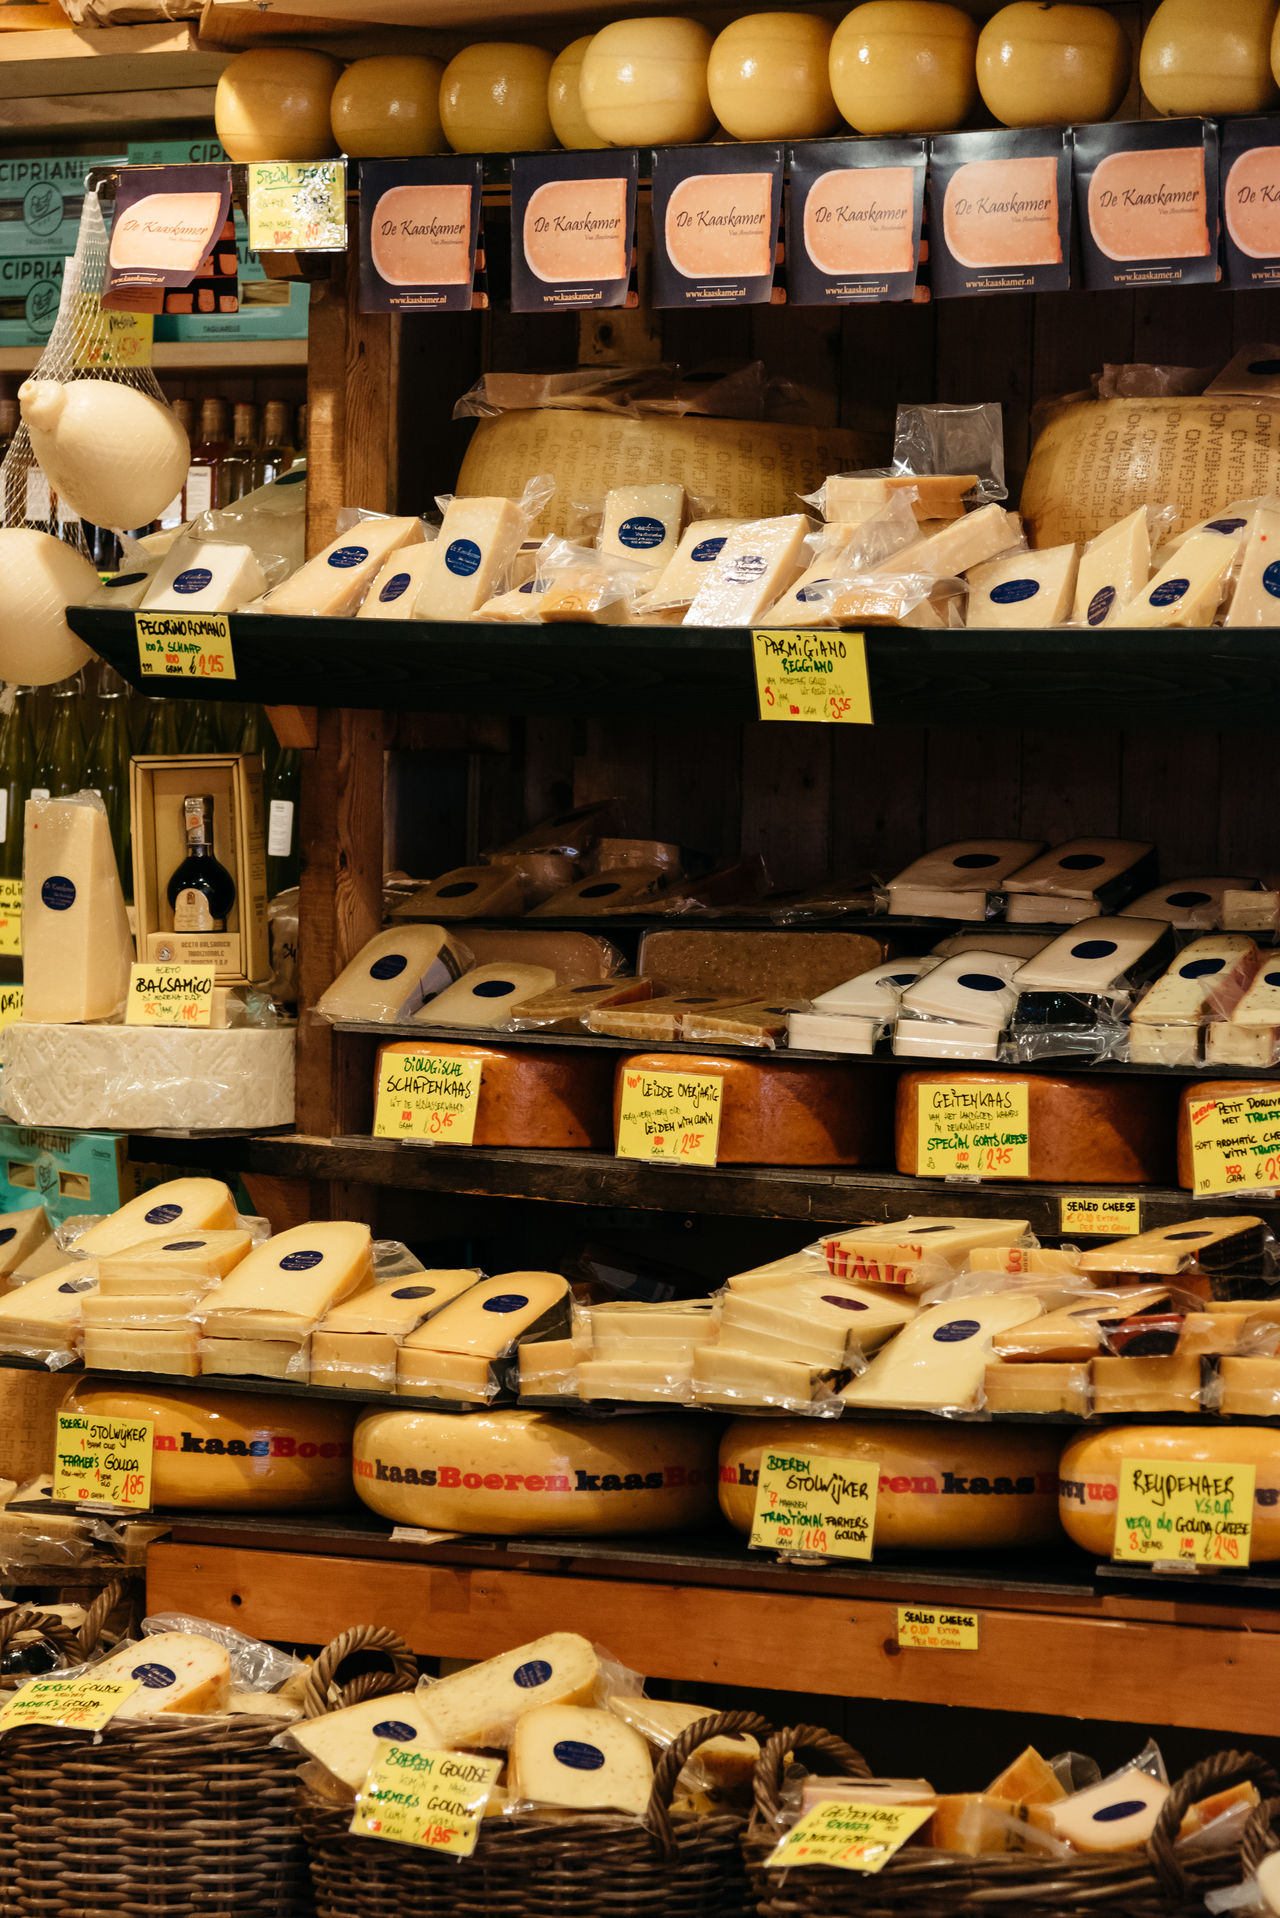 Dutch cheese in a store Abundance Amsterdam Antique Cheese Choice Day Food Food Shopping Foodie Full Frame Gouda Gourmet Indoors  Large Group Of Objects Netherlands No People Retail  Shelf Store Variation Wood - Material